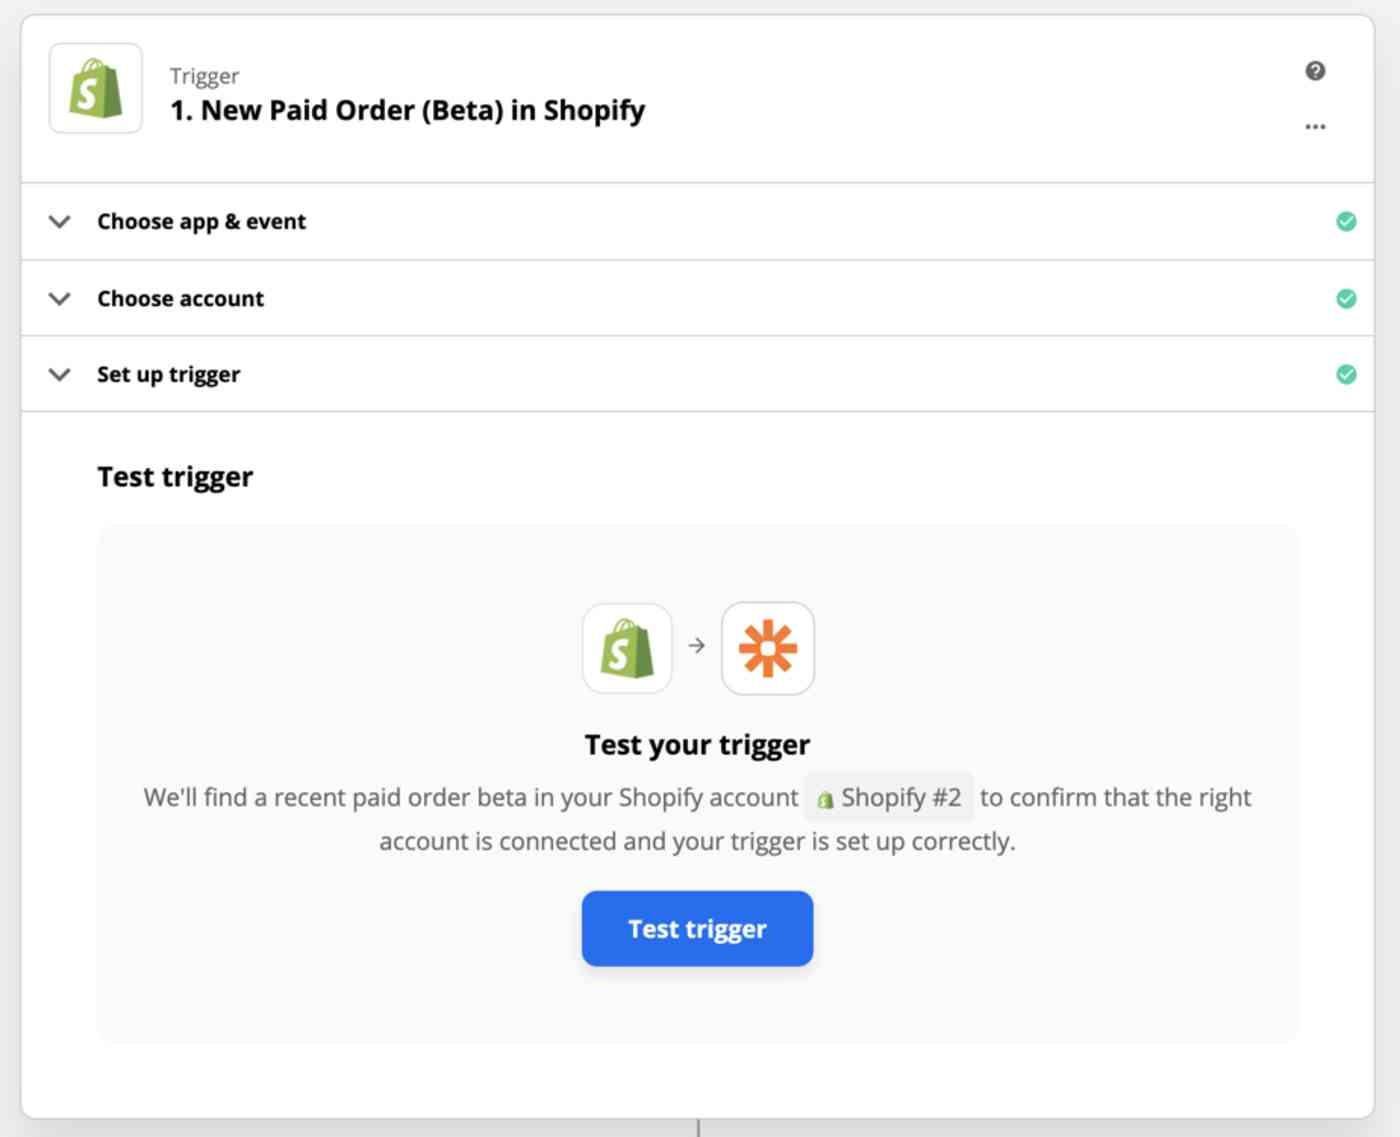 New Trigger set-up page: 1. New Paid Order (Beta) in Shopify